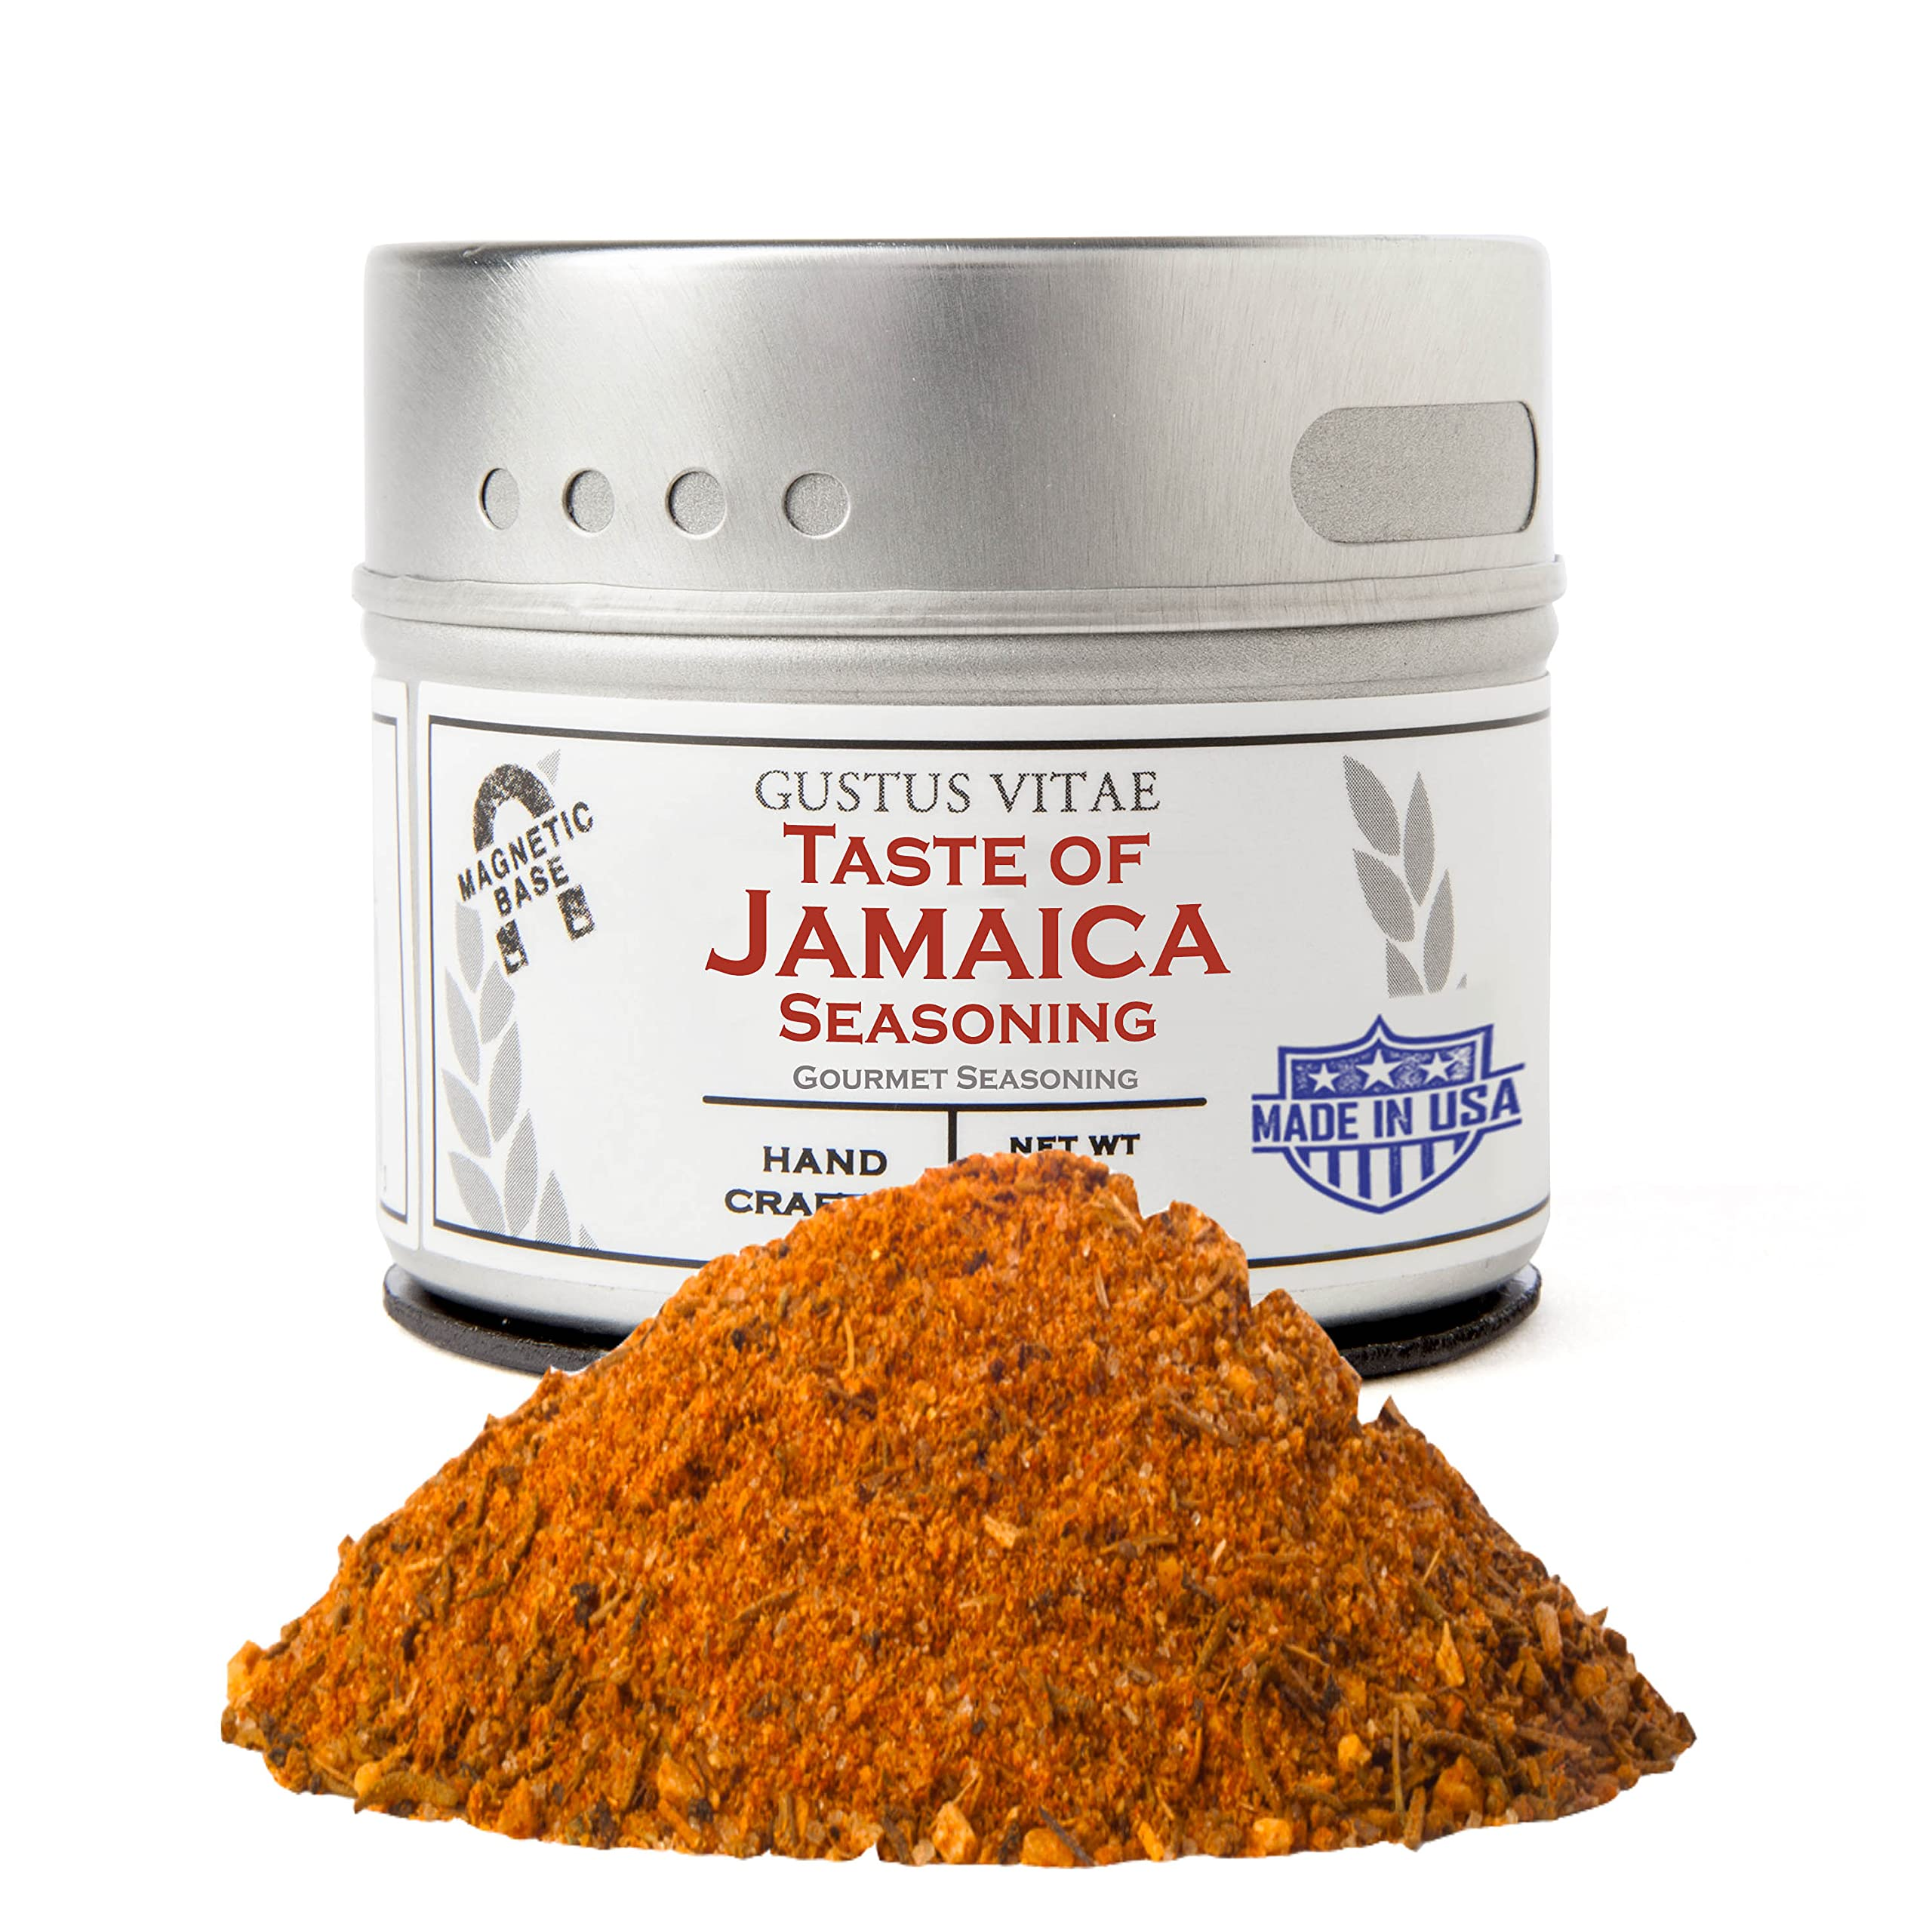 Taste of Jamaica Jerk Seasoning & Spice Blend - Authentic Artisanal Gourmet Blend - Non GMO - Crafted In Small Batches - All Natural - Magnetic Tin - Hand Packed - 1.5 Ounce